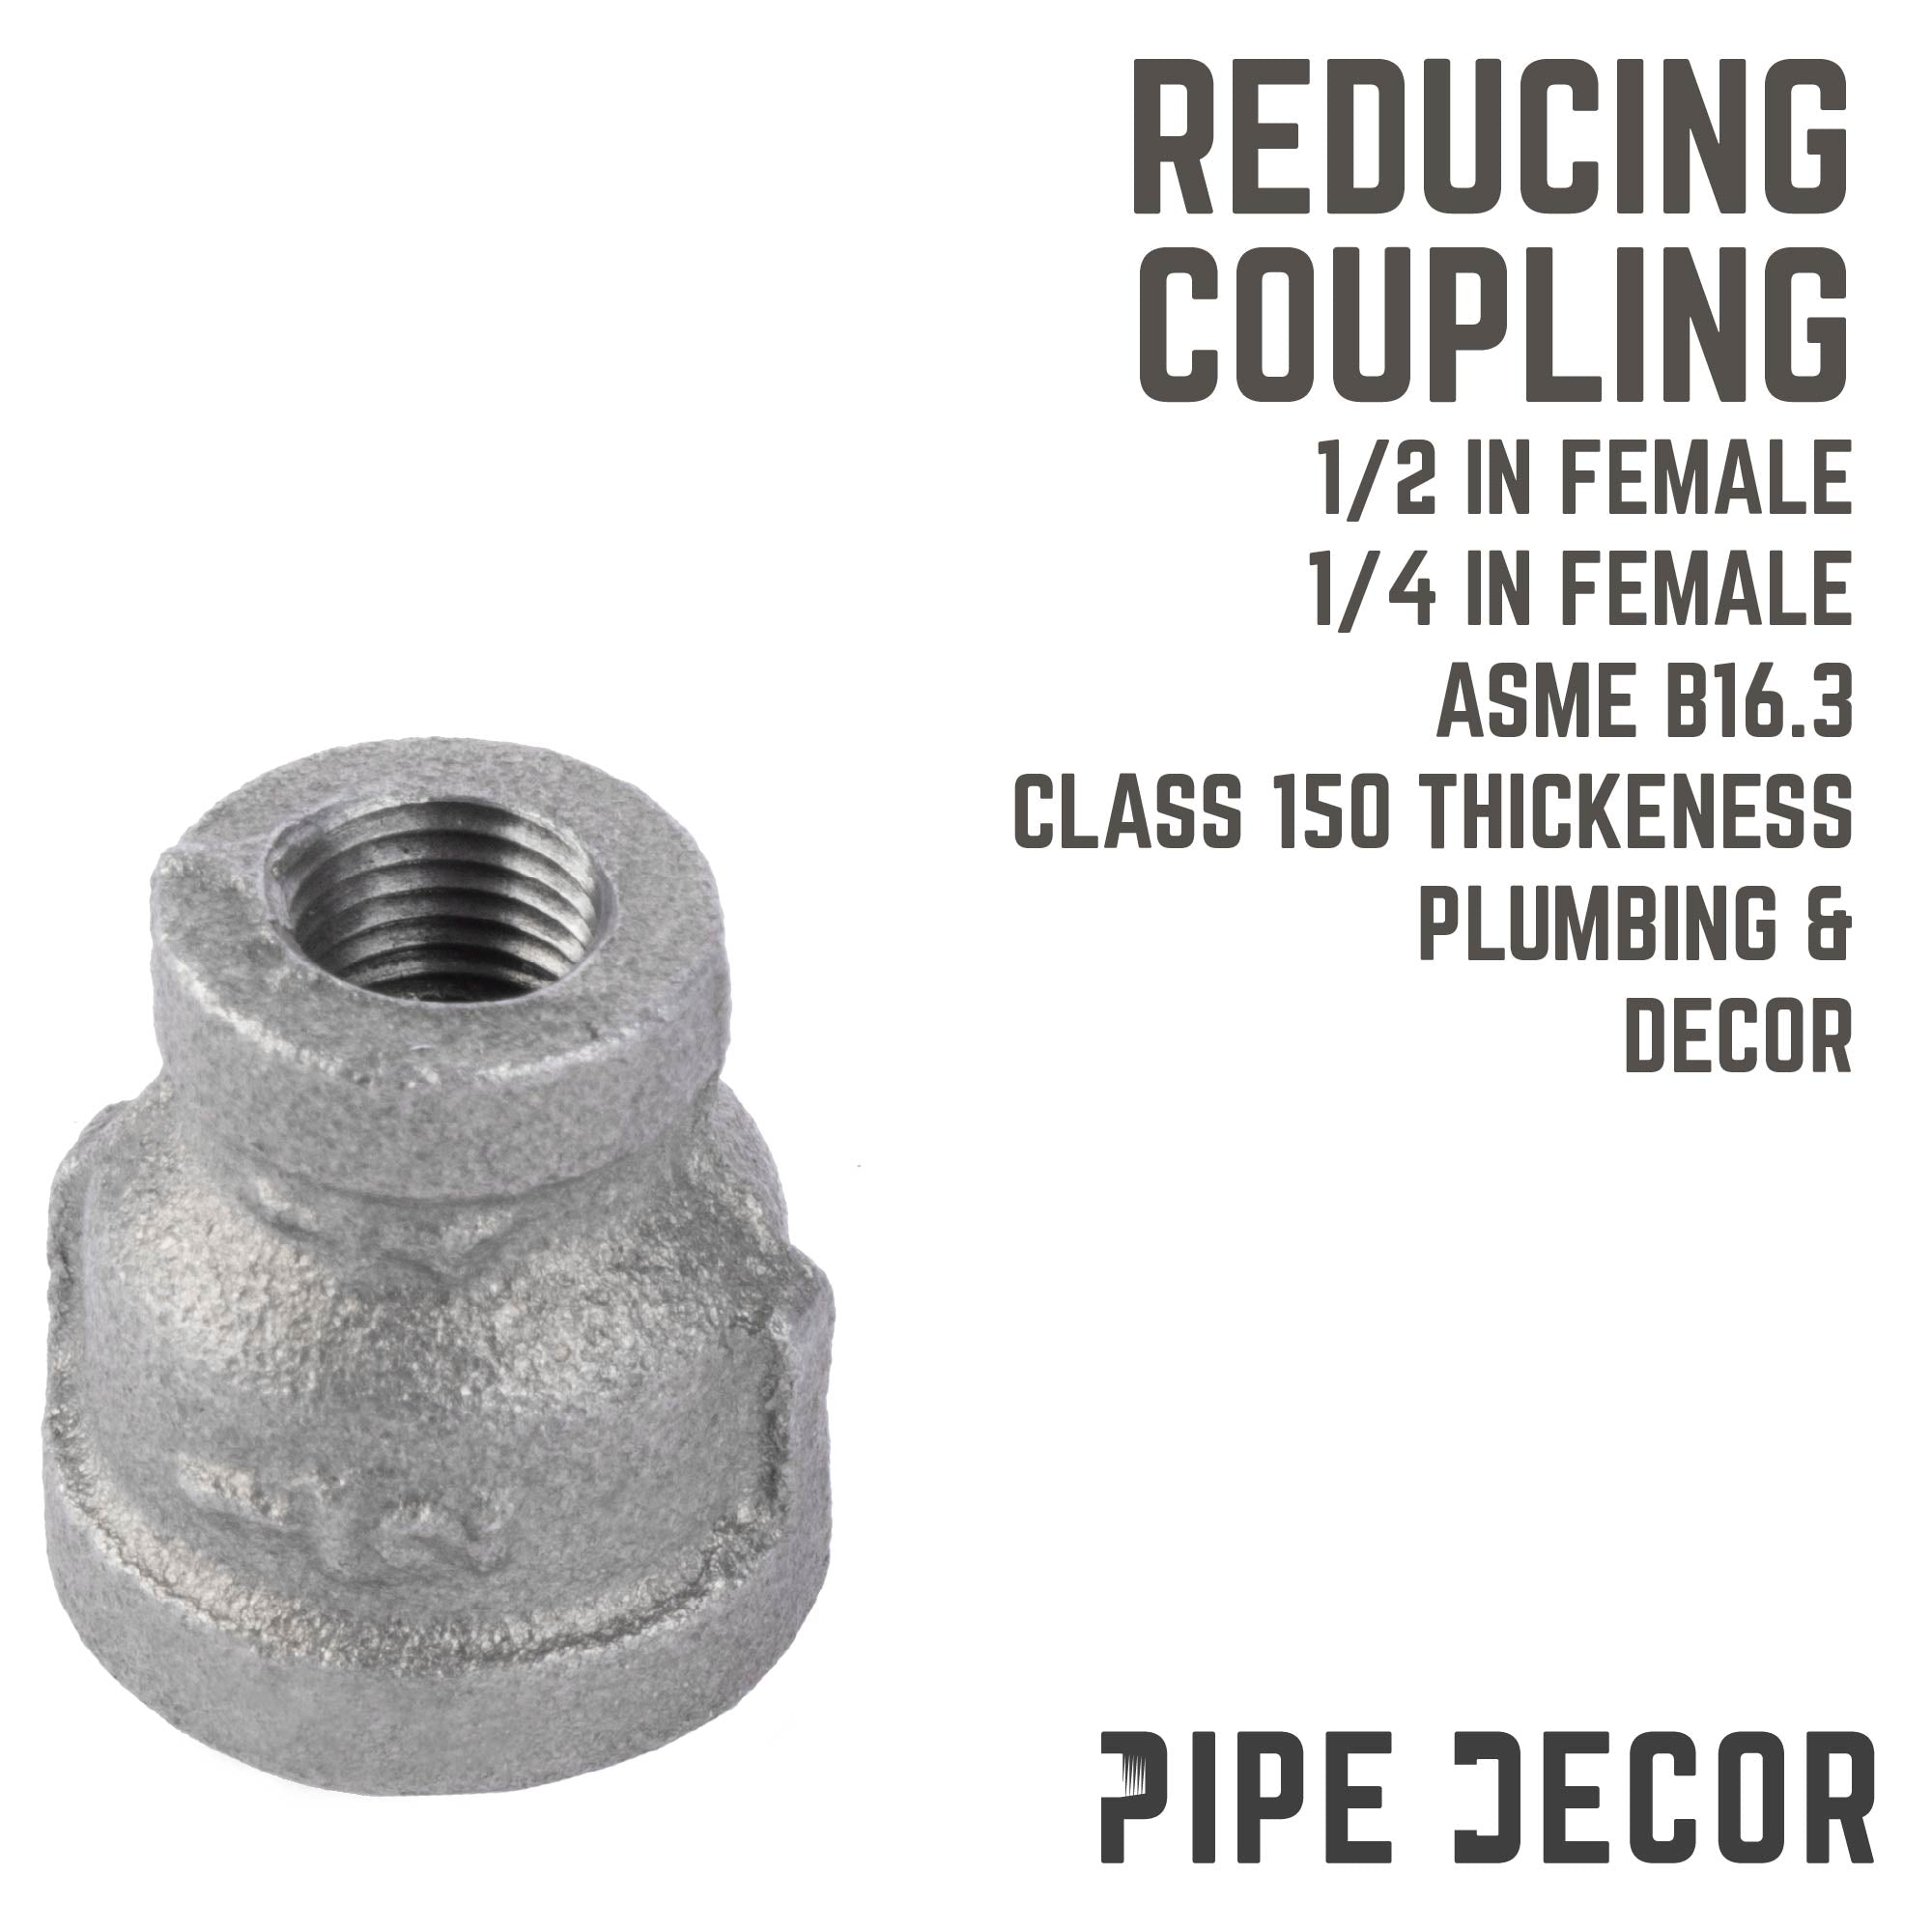 1/2 in. X 1/4 in. Reducing Coupling - Pipe Decor